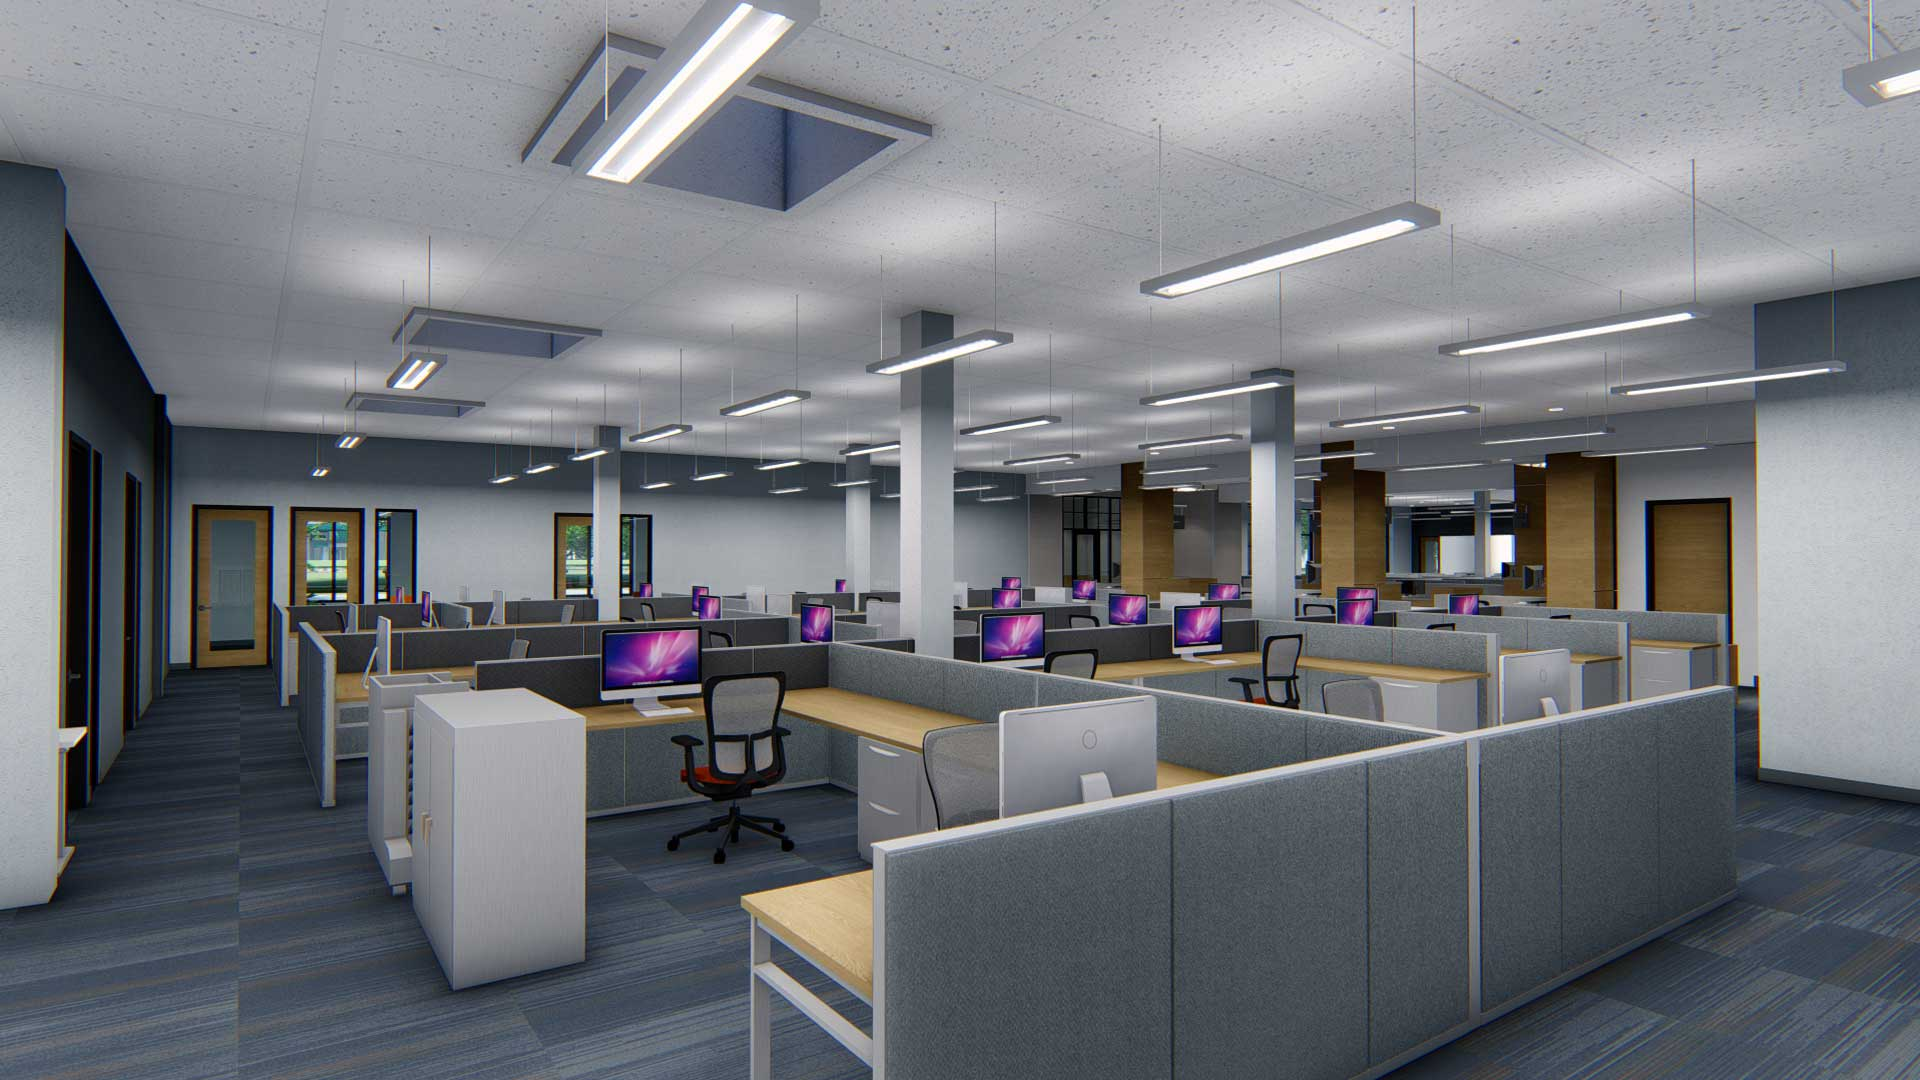 Royal Oak City Hall open concept office space with shared cubicles rendering